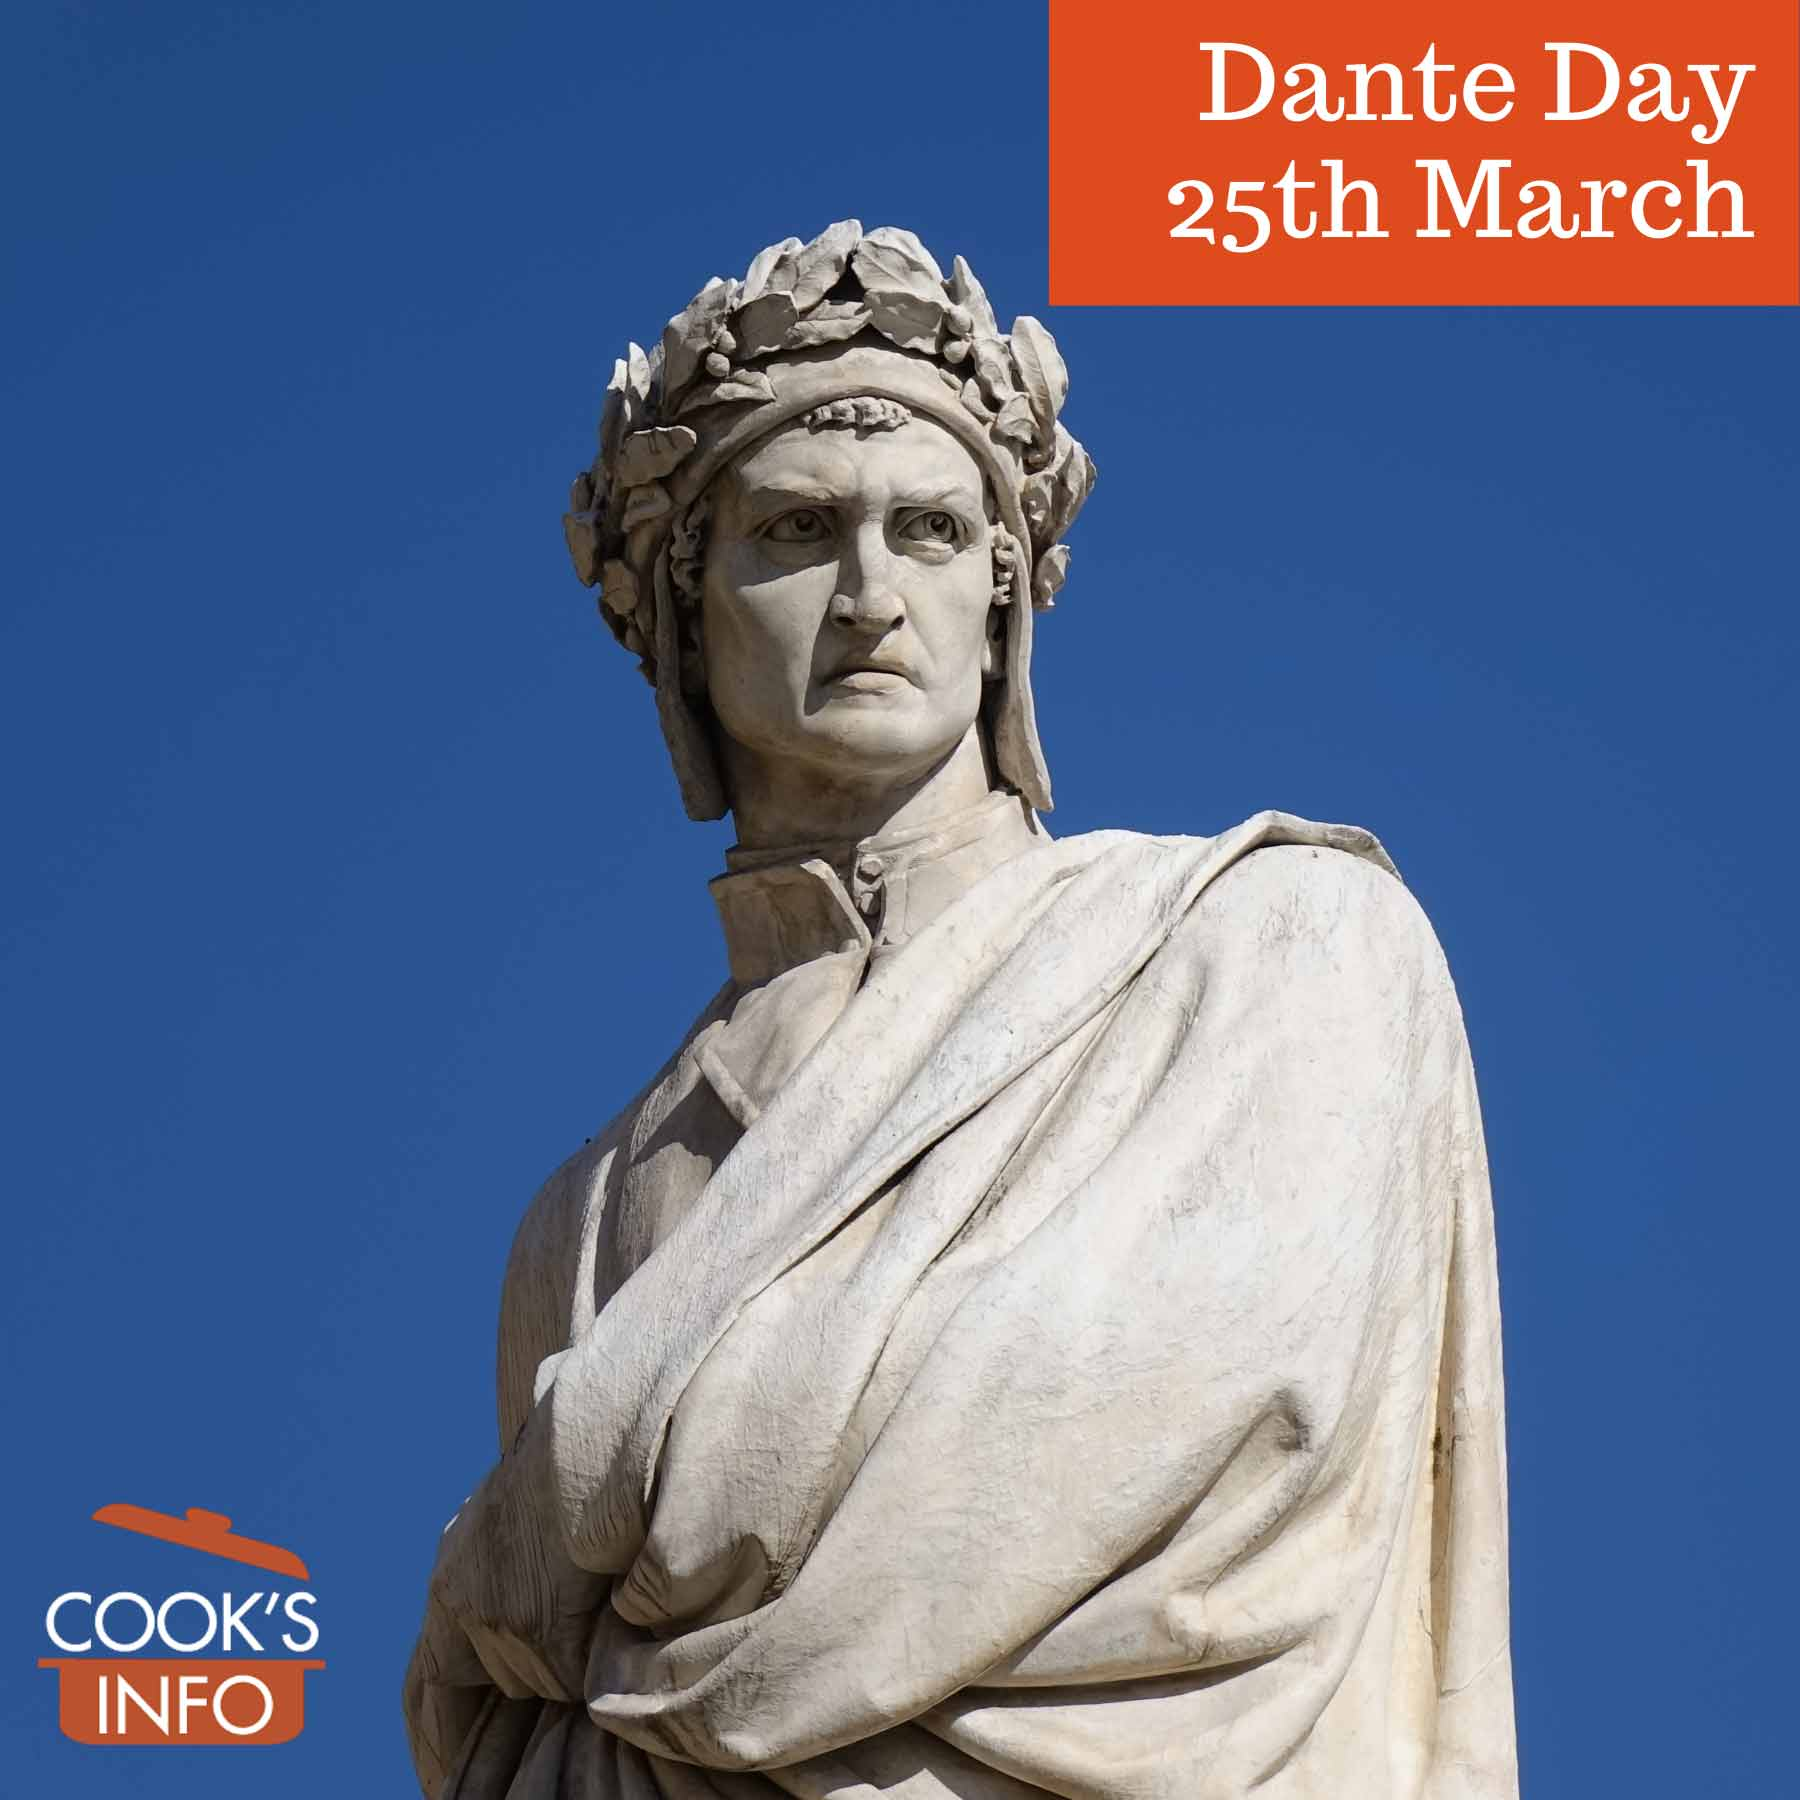 Statue of Dante in Florence